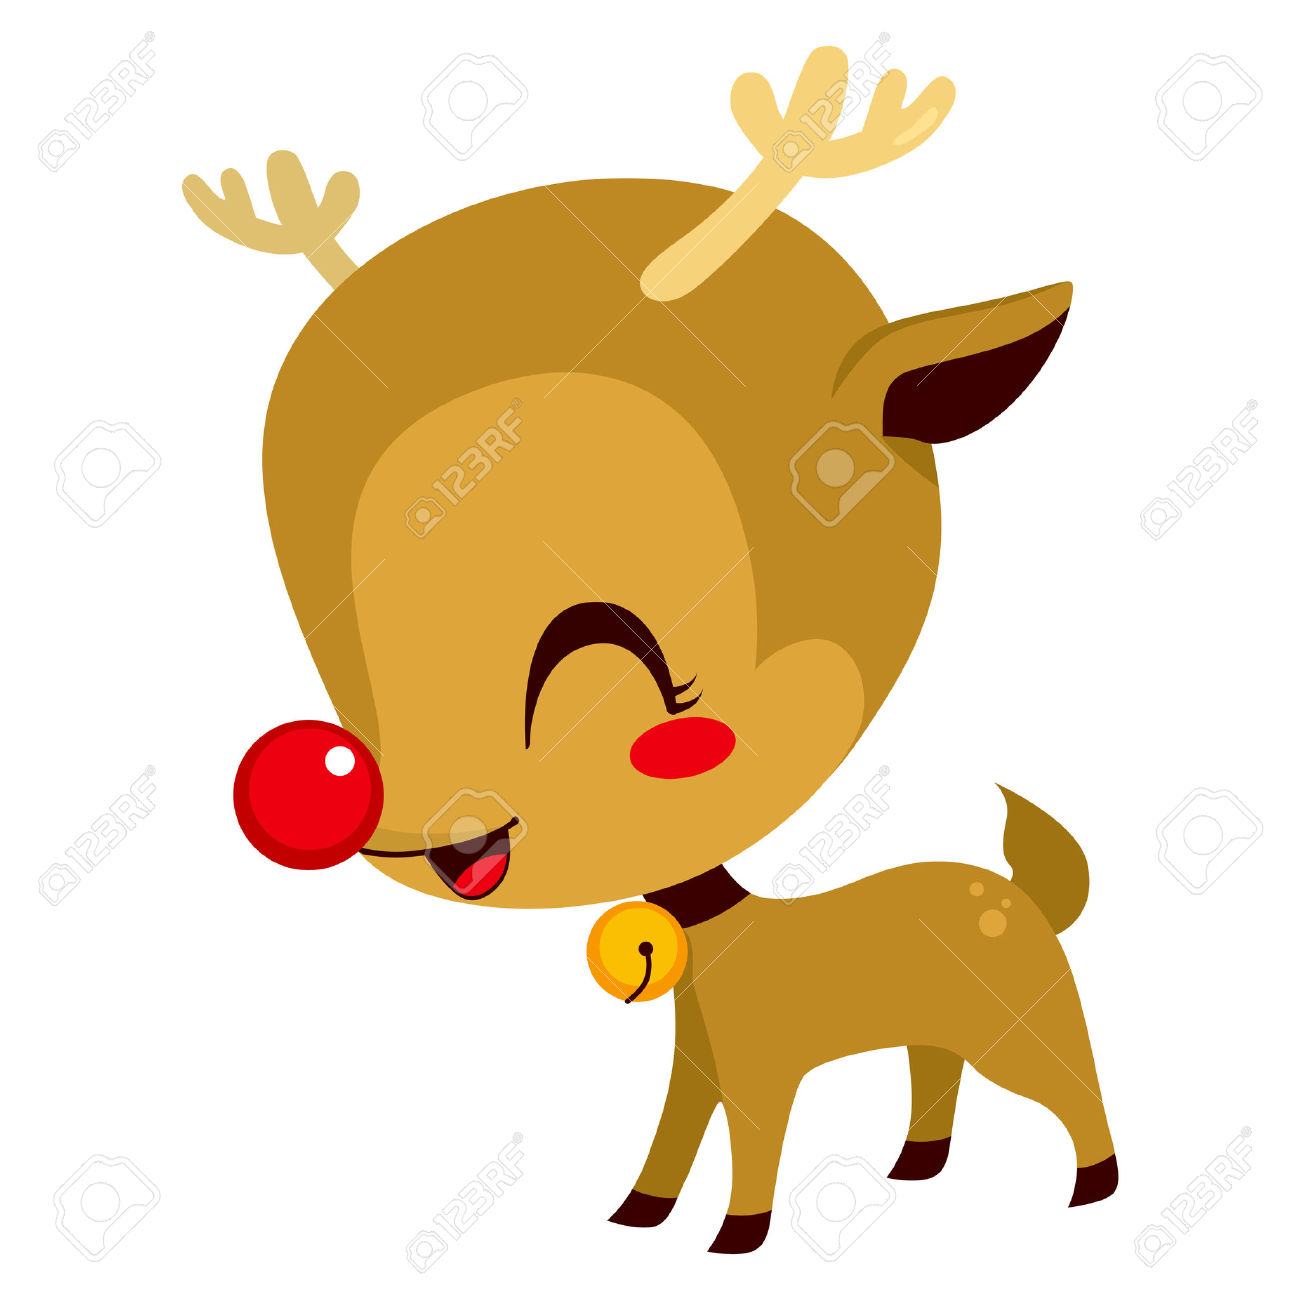 rudolph the red nose reindeer: .